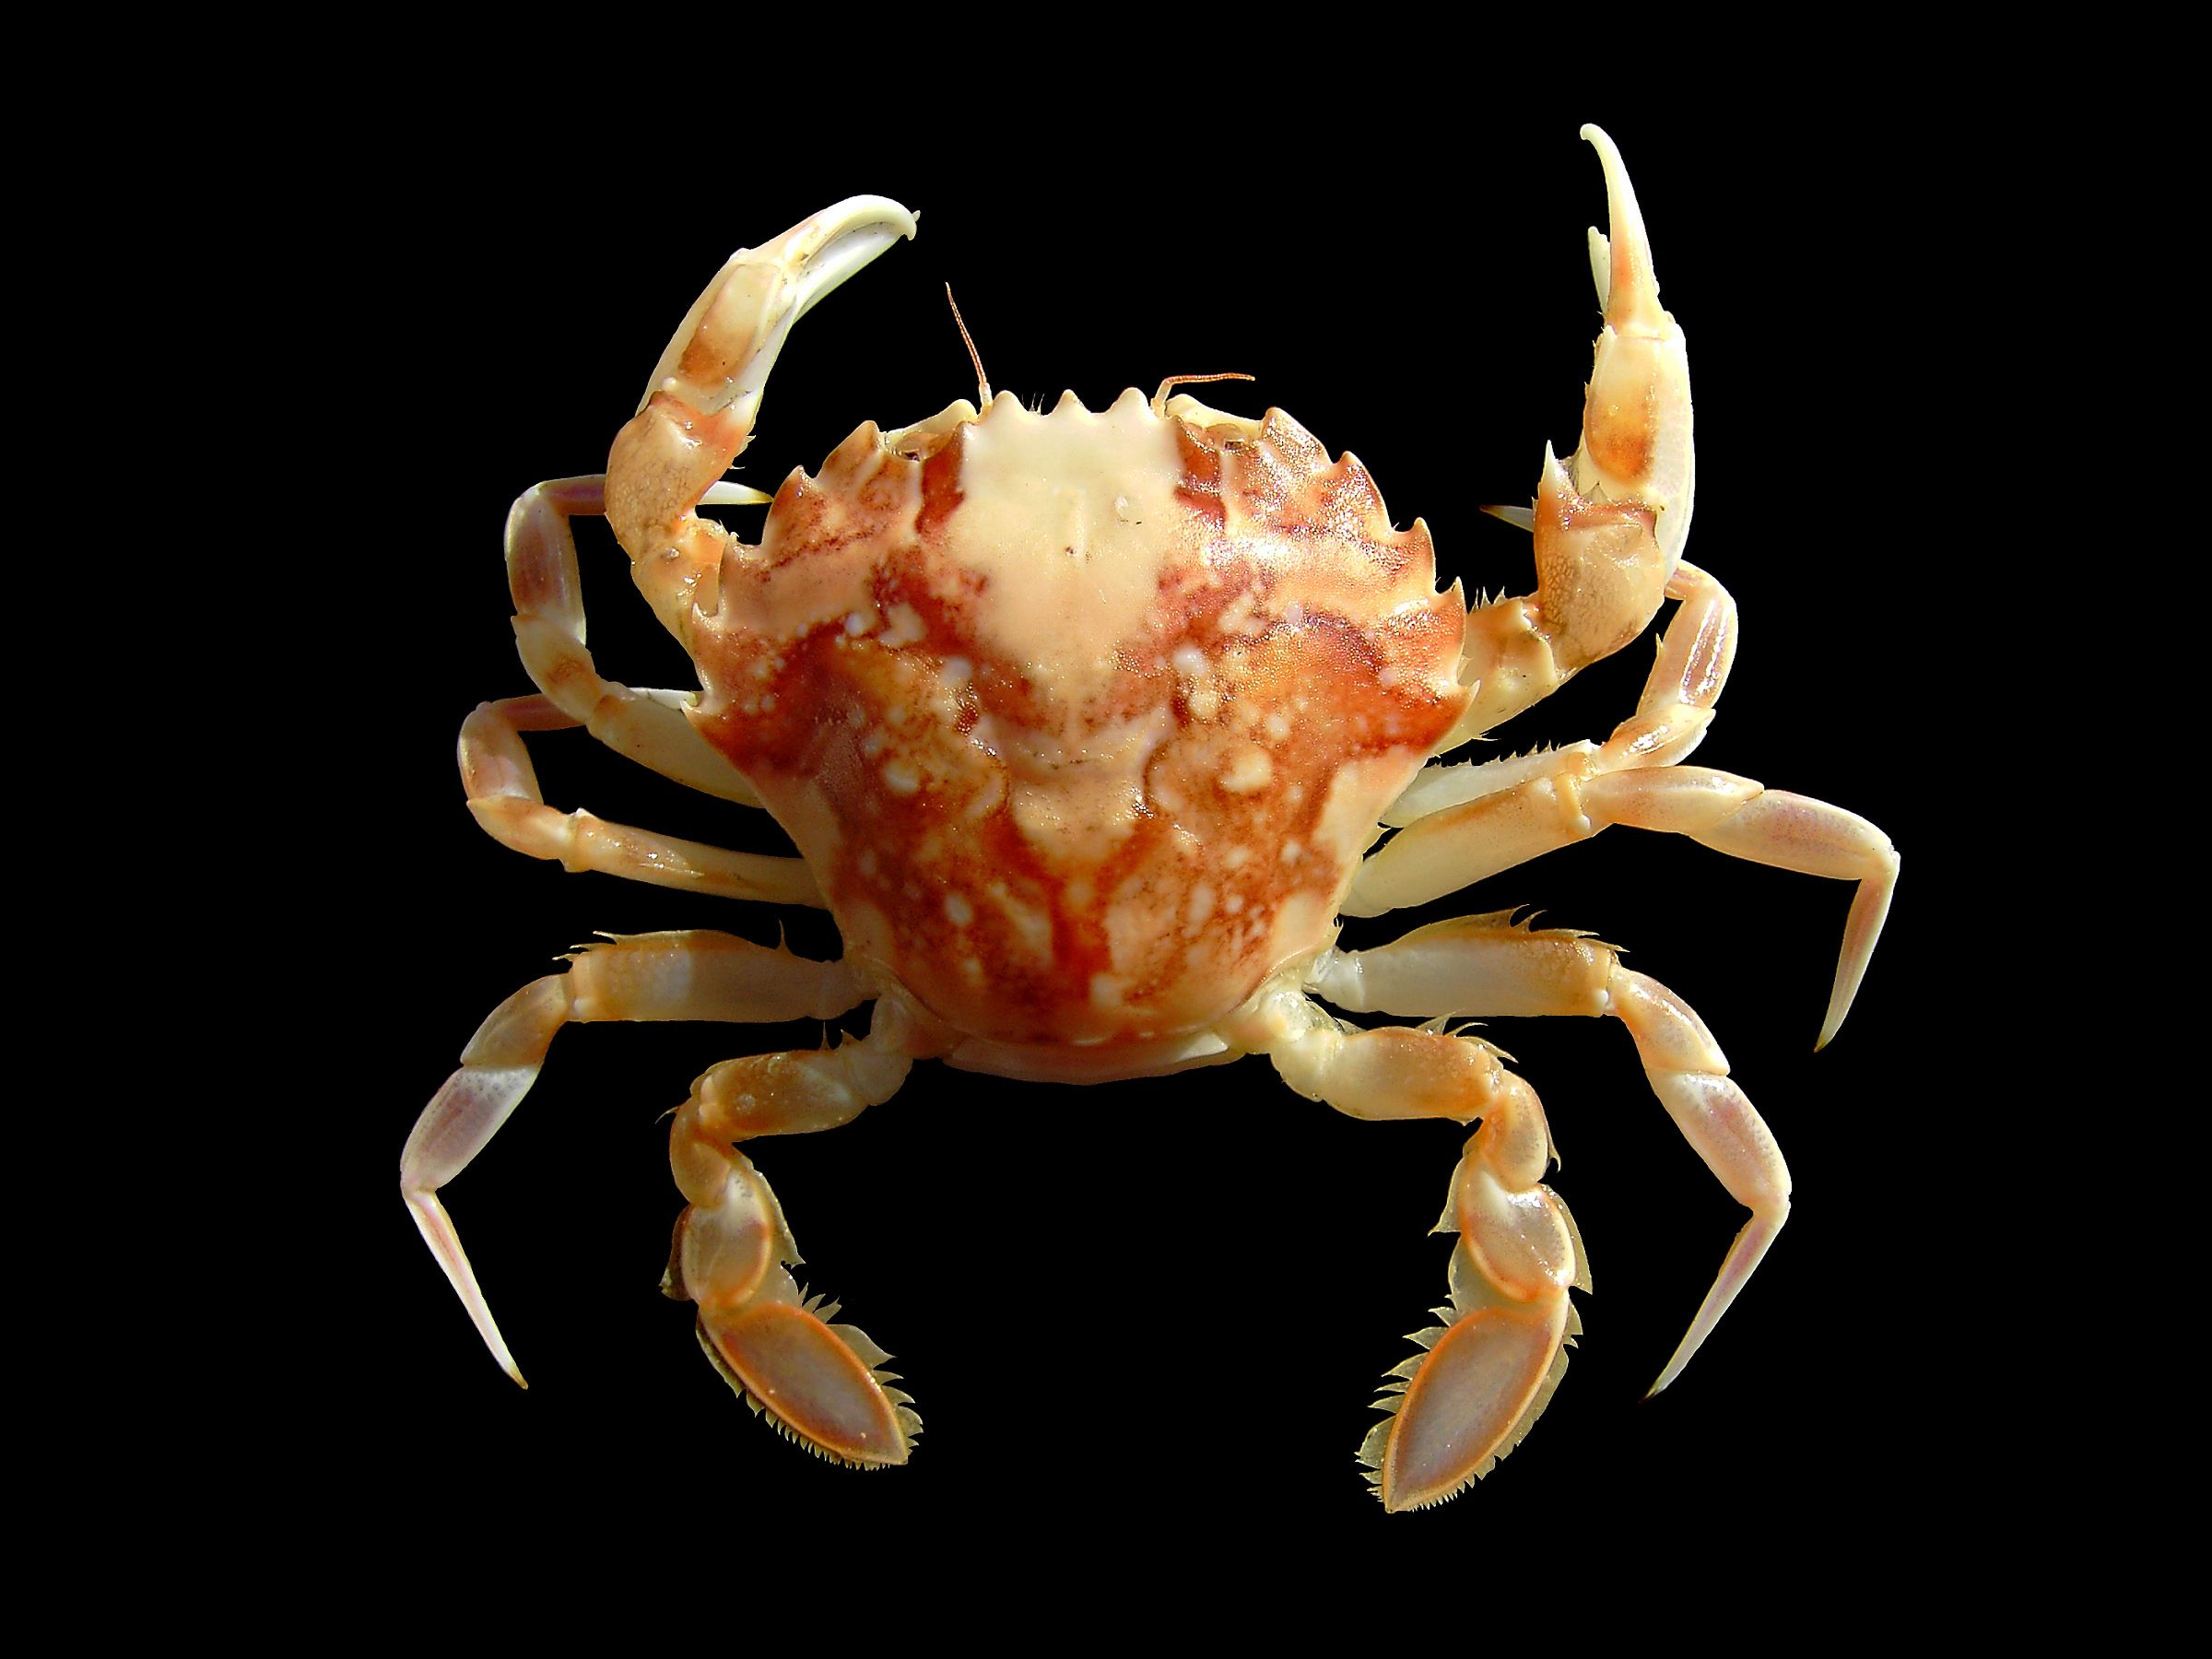 Liocarcinus marmoreus is a species of crab found in the